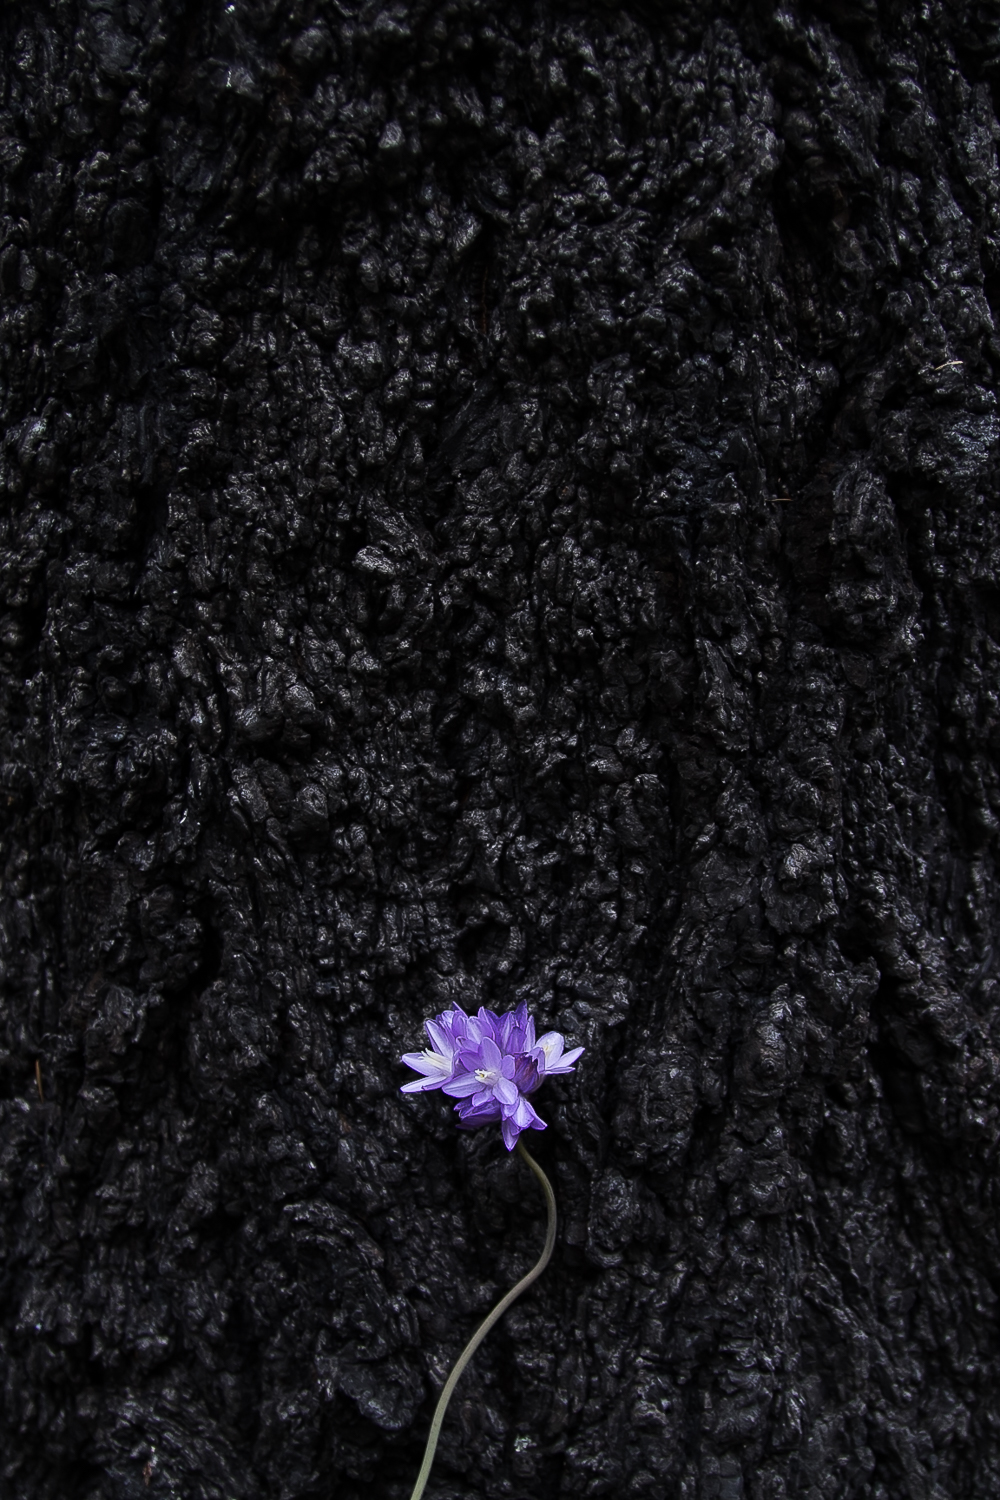 Blue Dicks ( Dichelostemma capitatum ) contrasted against a burnt tree trunk.